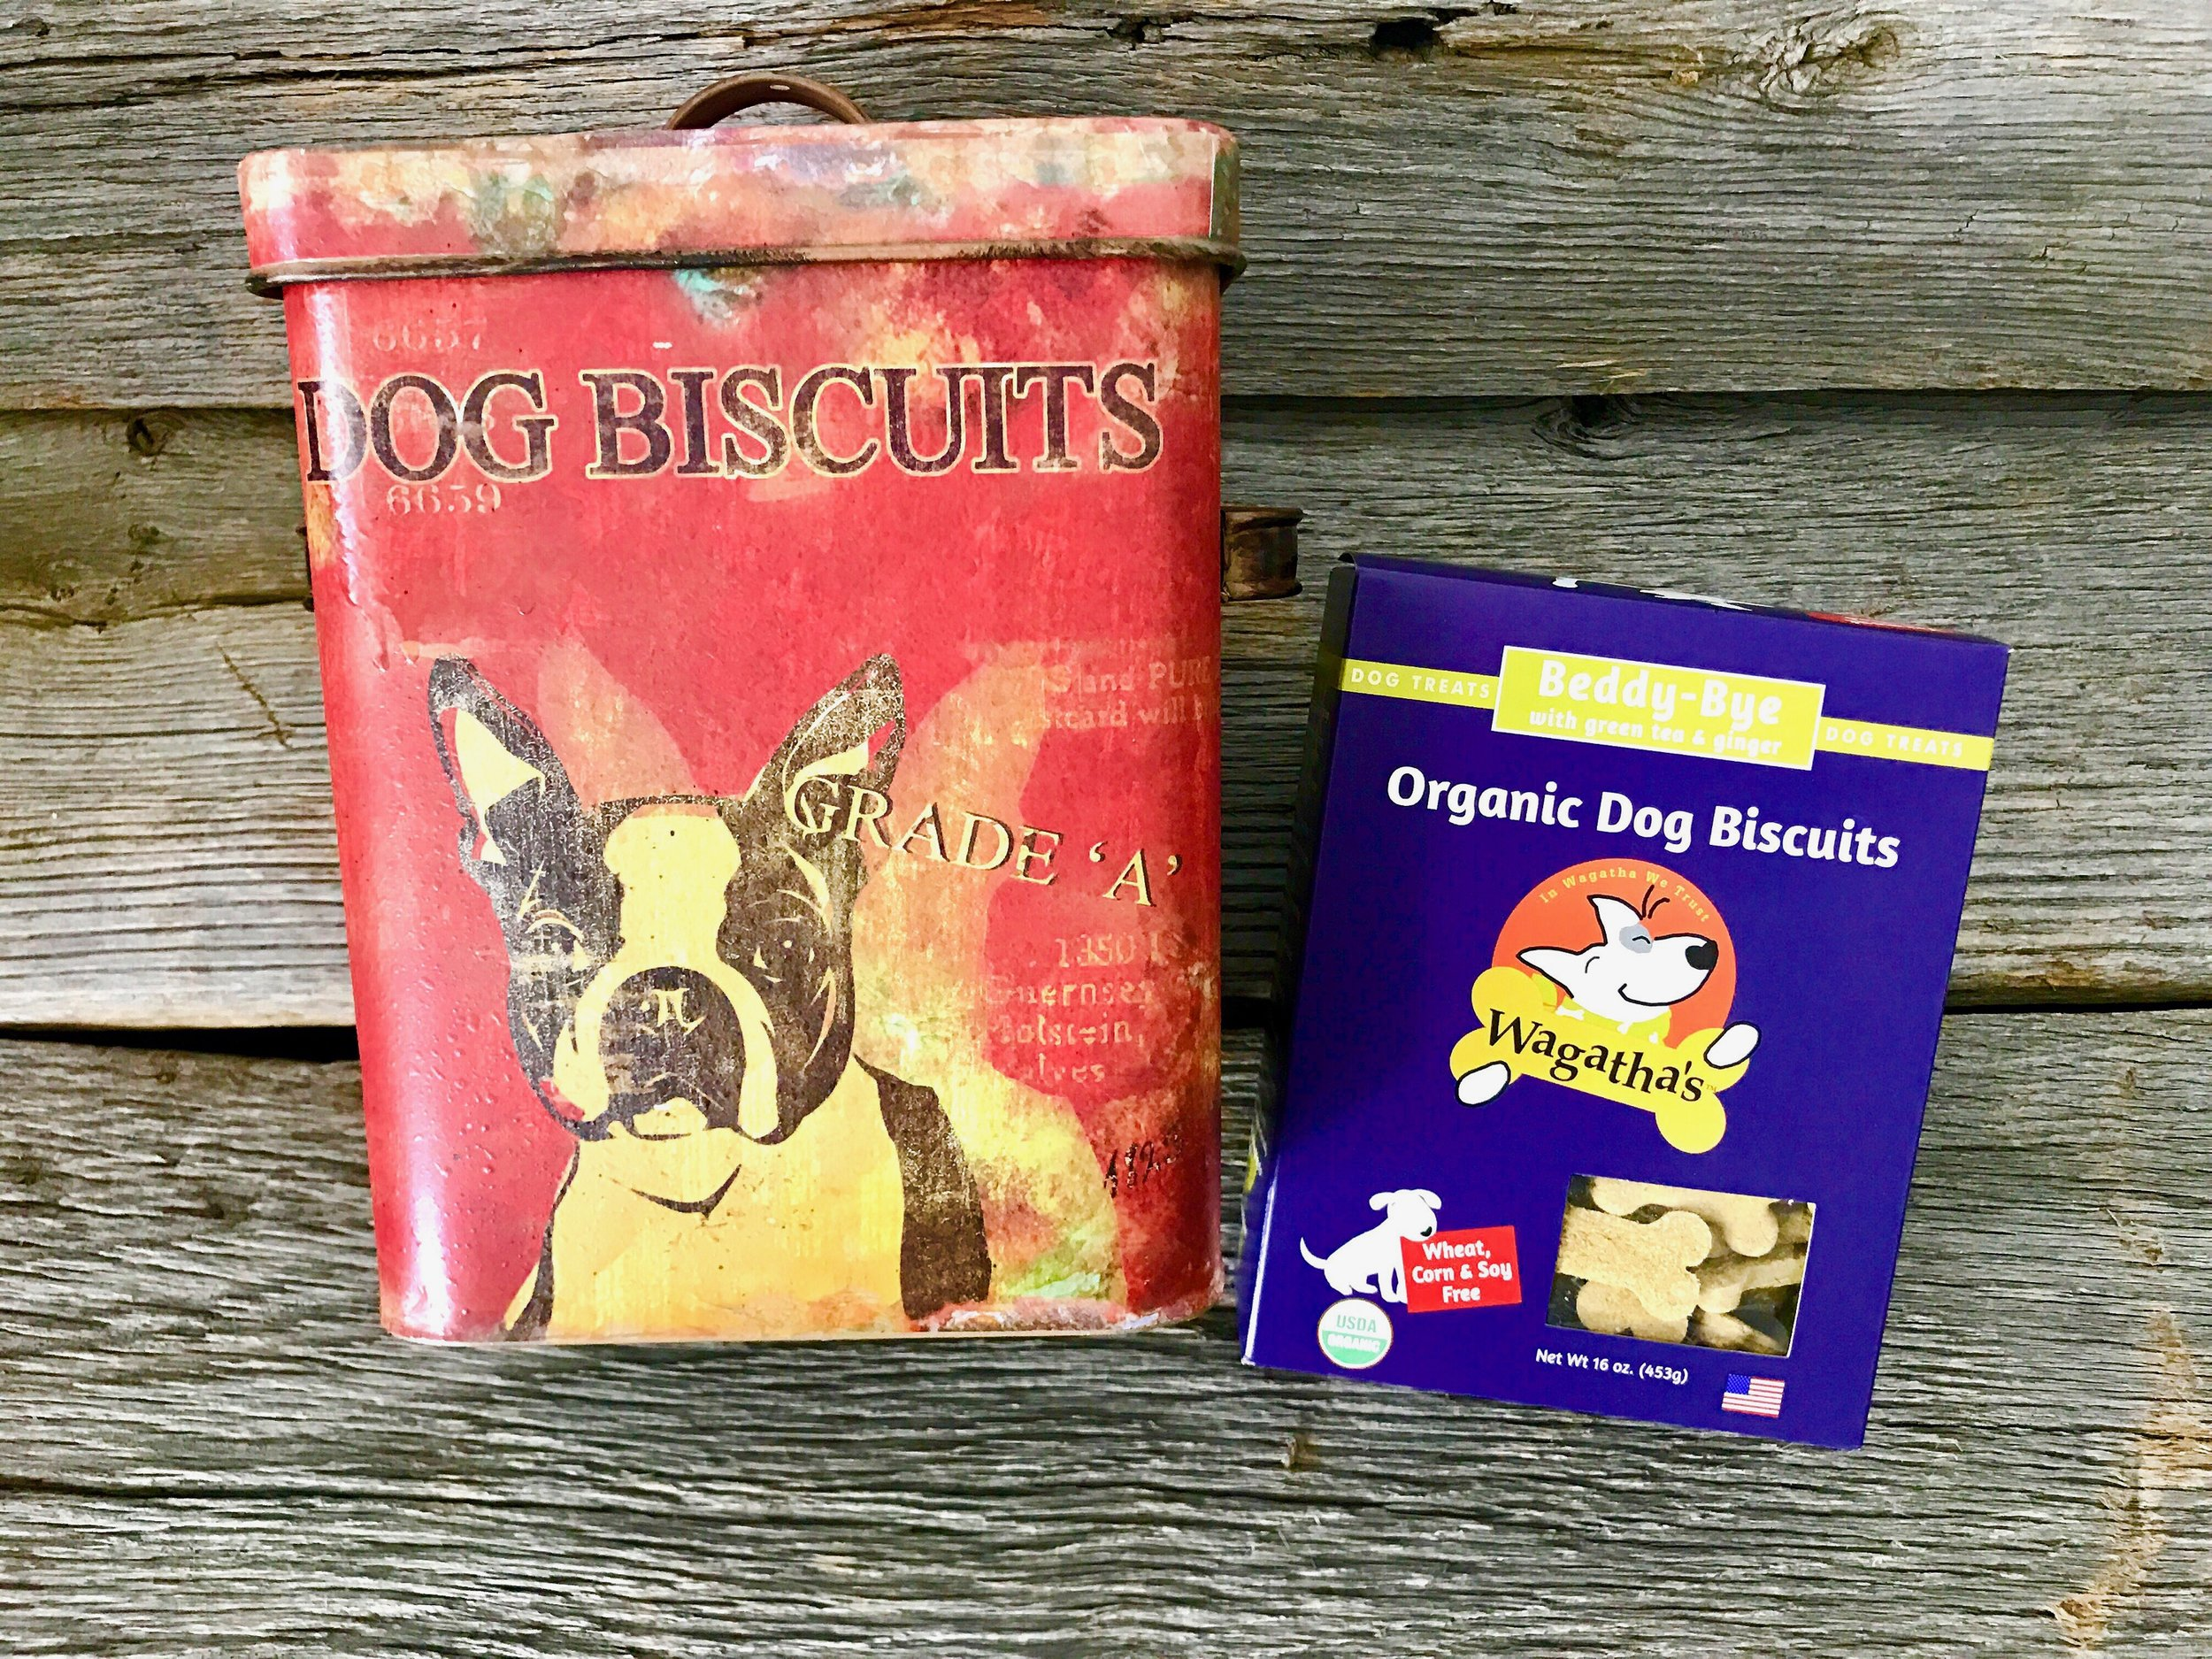 Dog Biscuit Tin + Organic Dog Biscuits - Our organic dog biscuits are perfect to store in this amazing vintage inspired tin box measuring 9